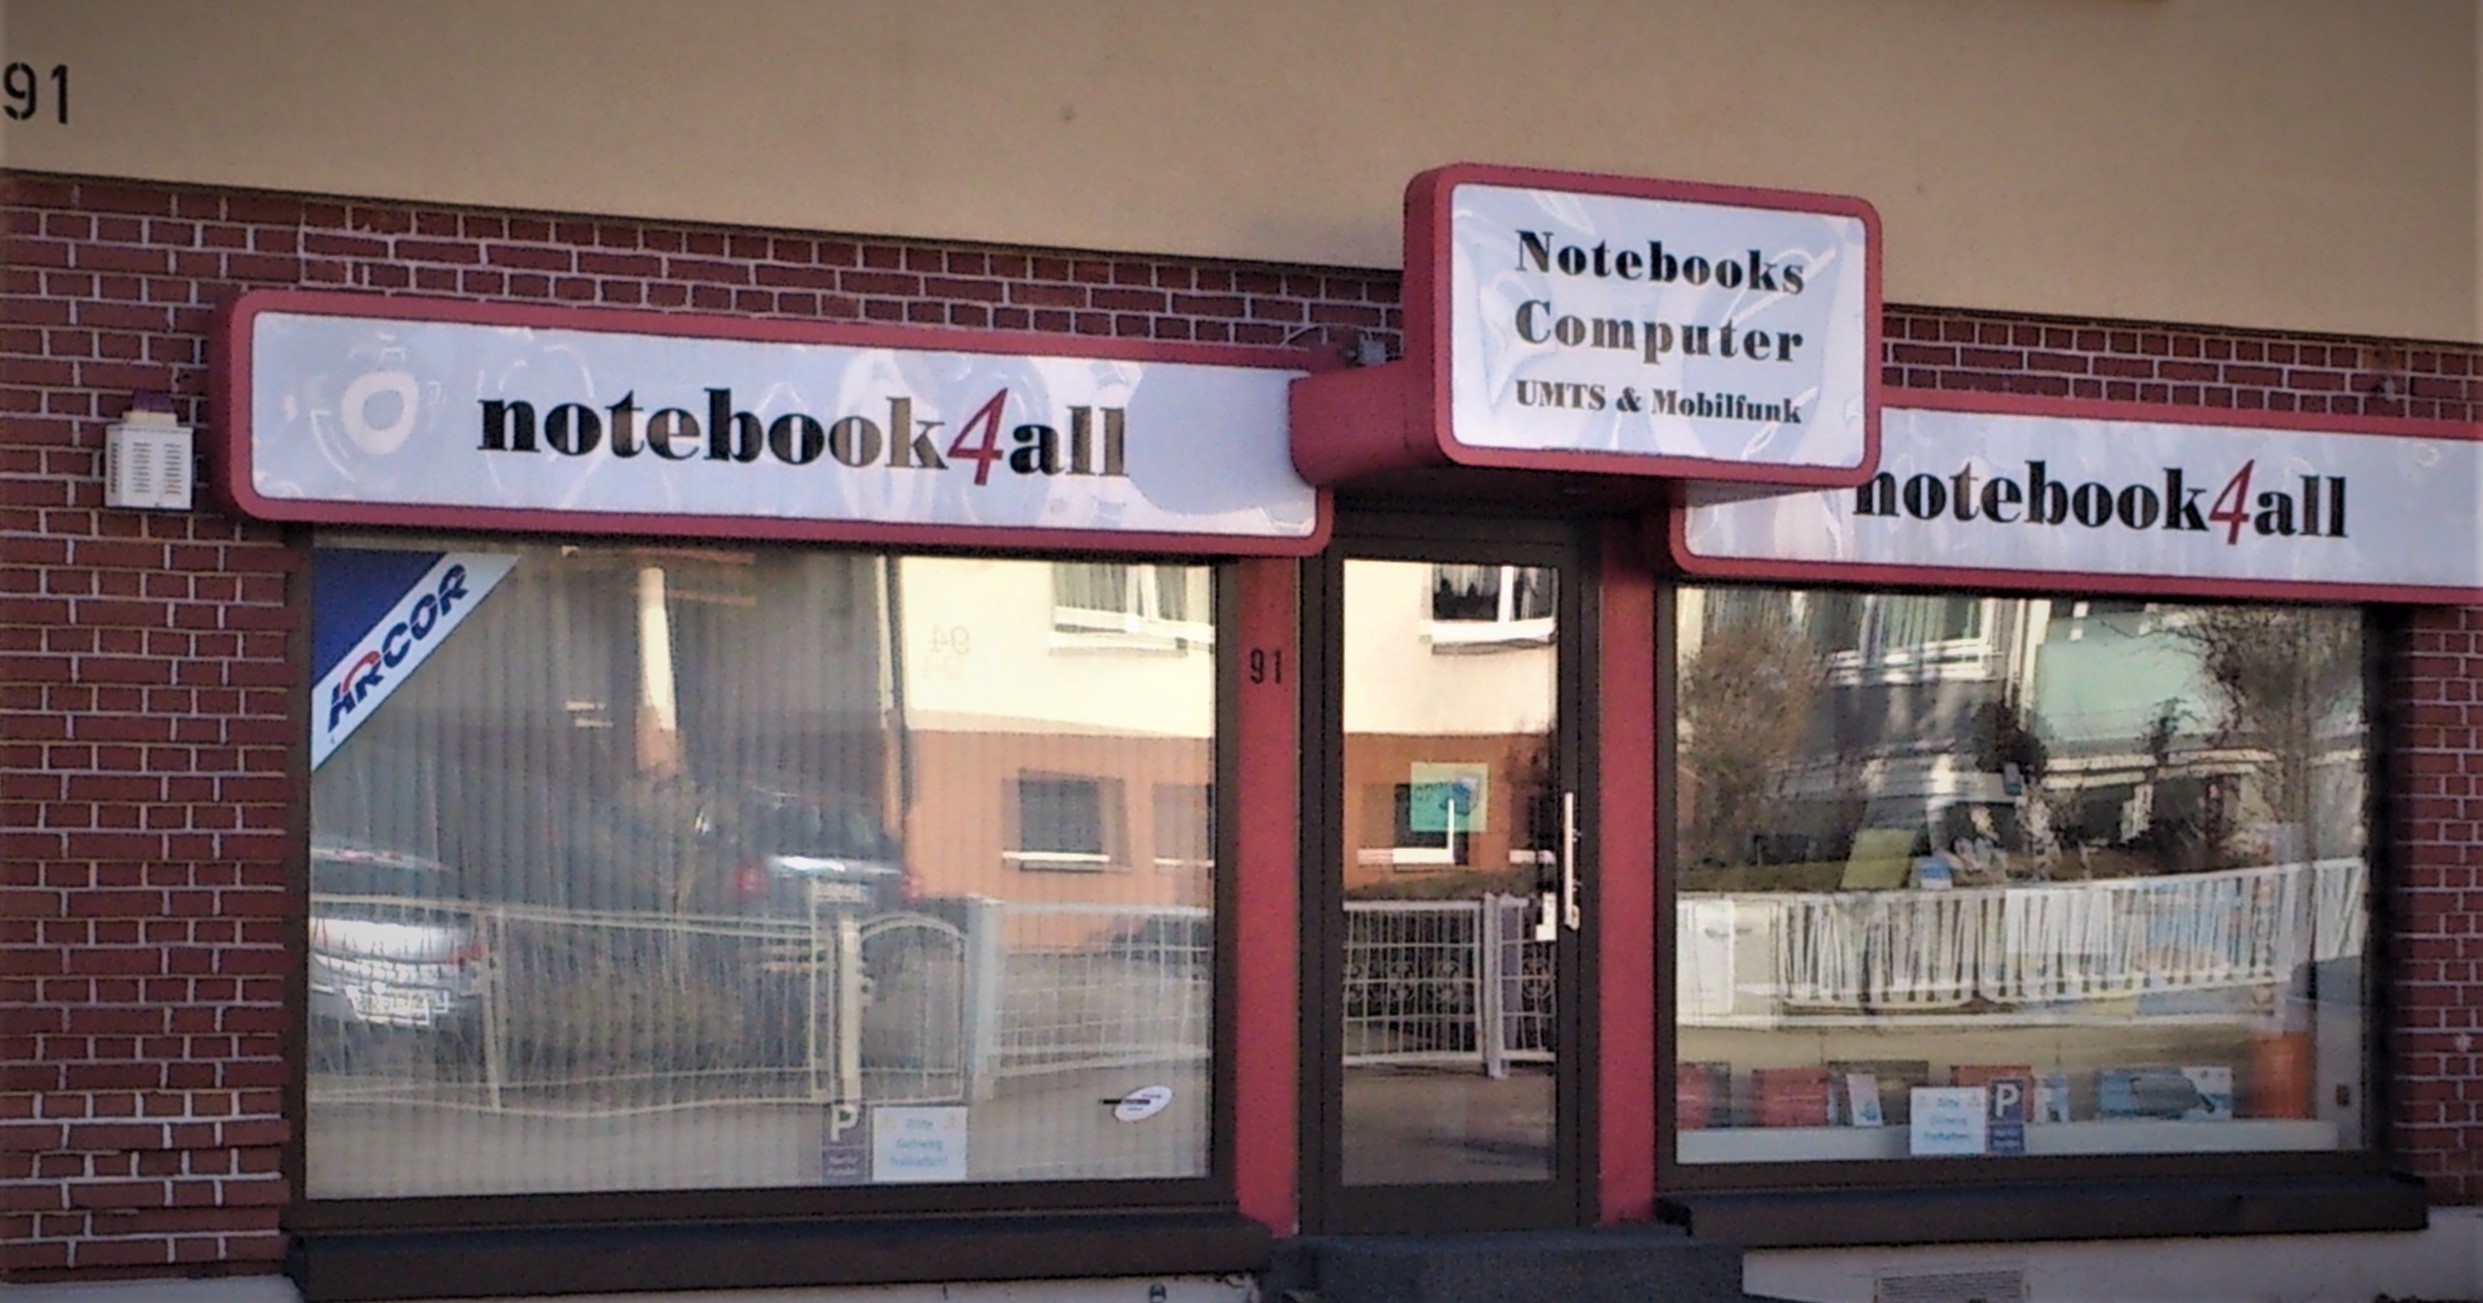 Notebook4all GmbH